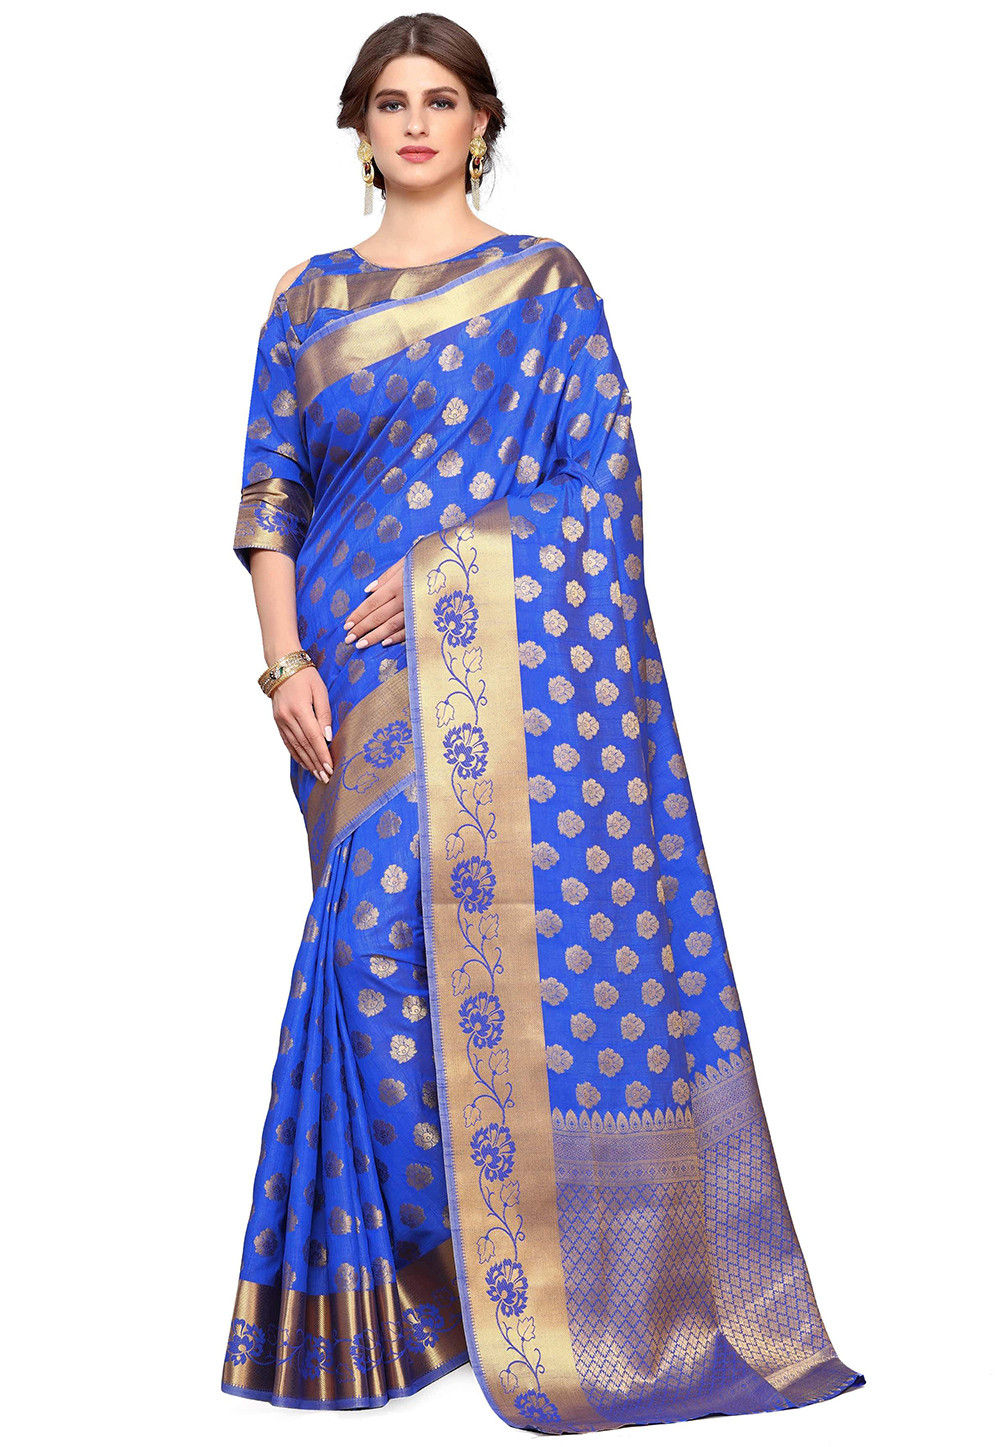 Uppada Silk Saree in Royal Blue